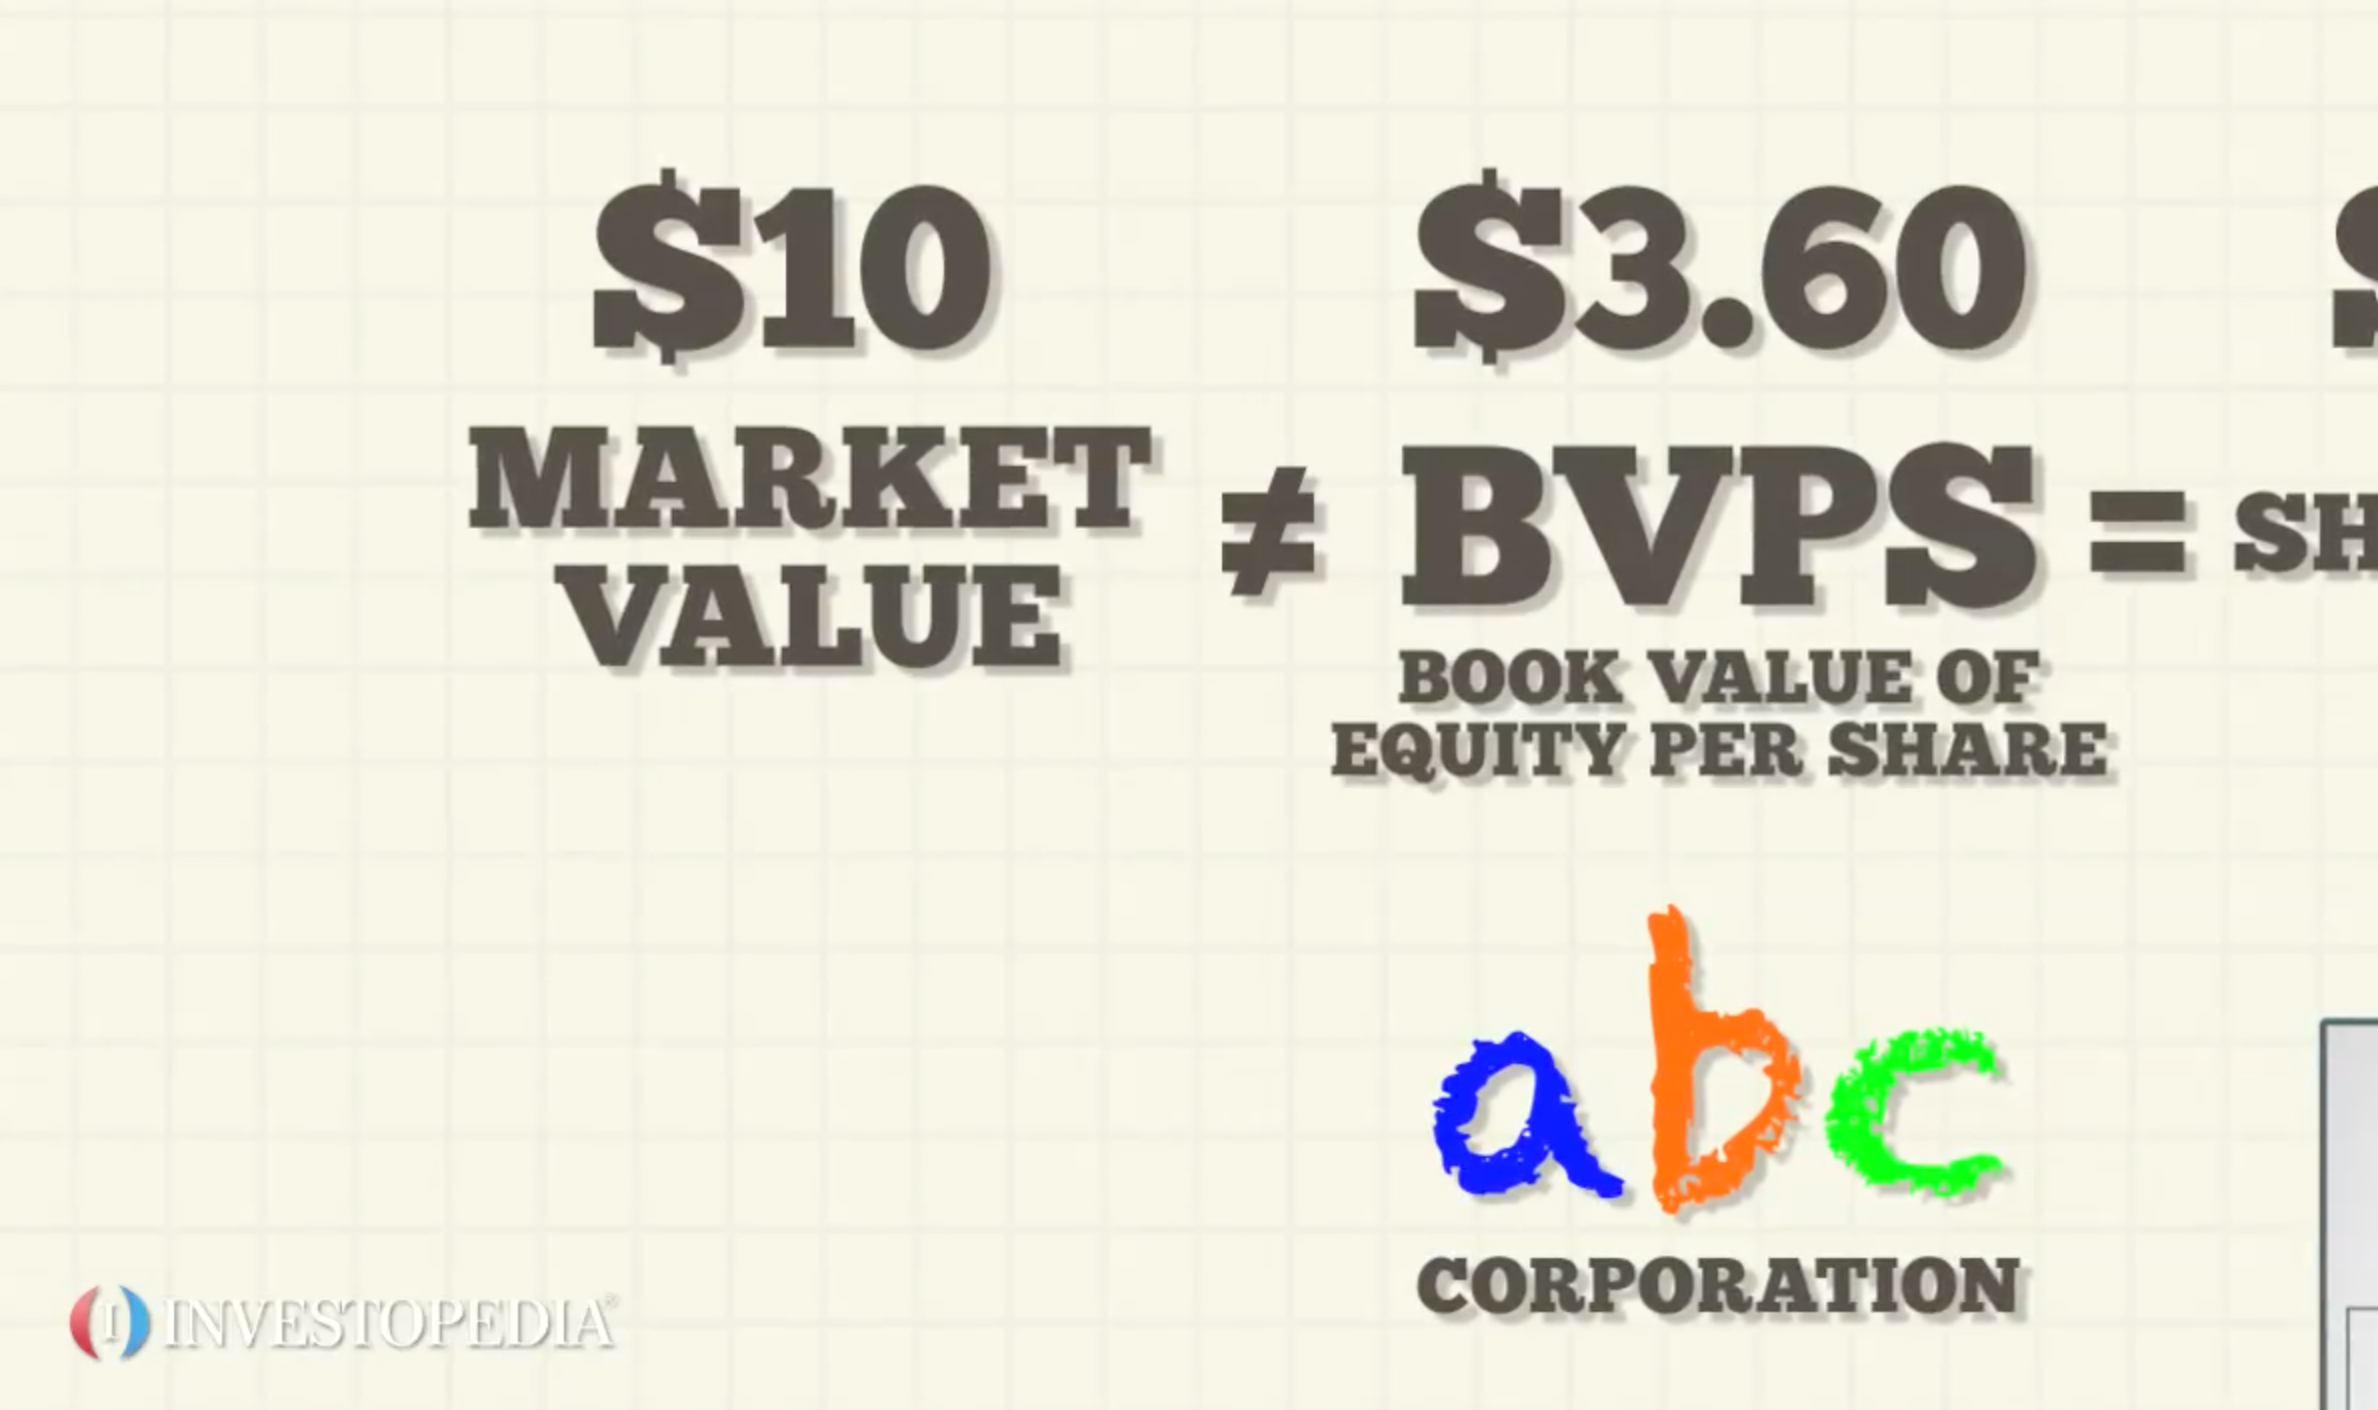 Book Value of Equity Per Share (BVPS)